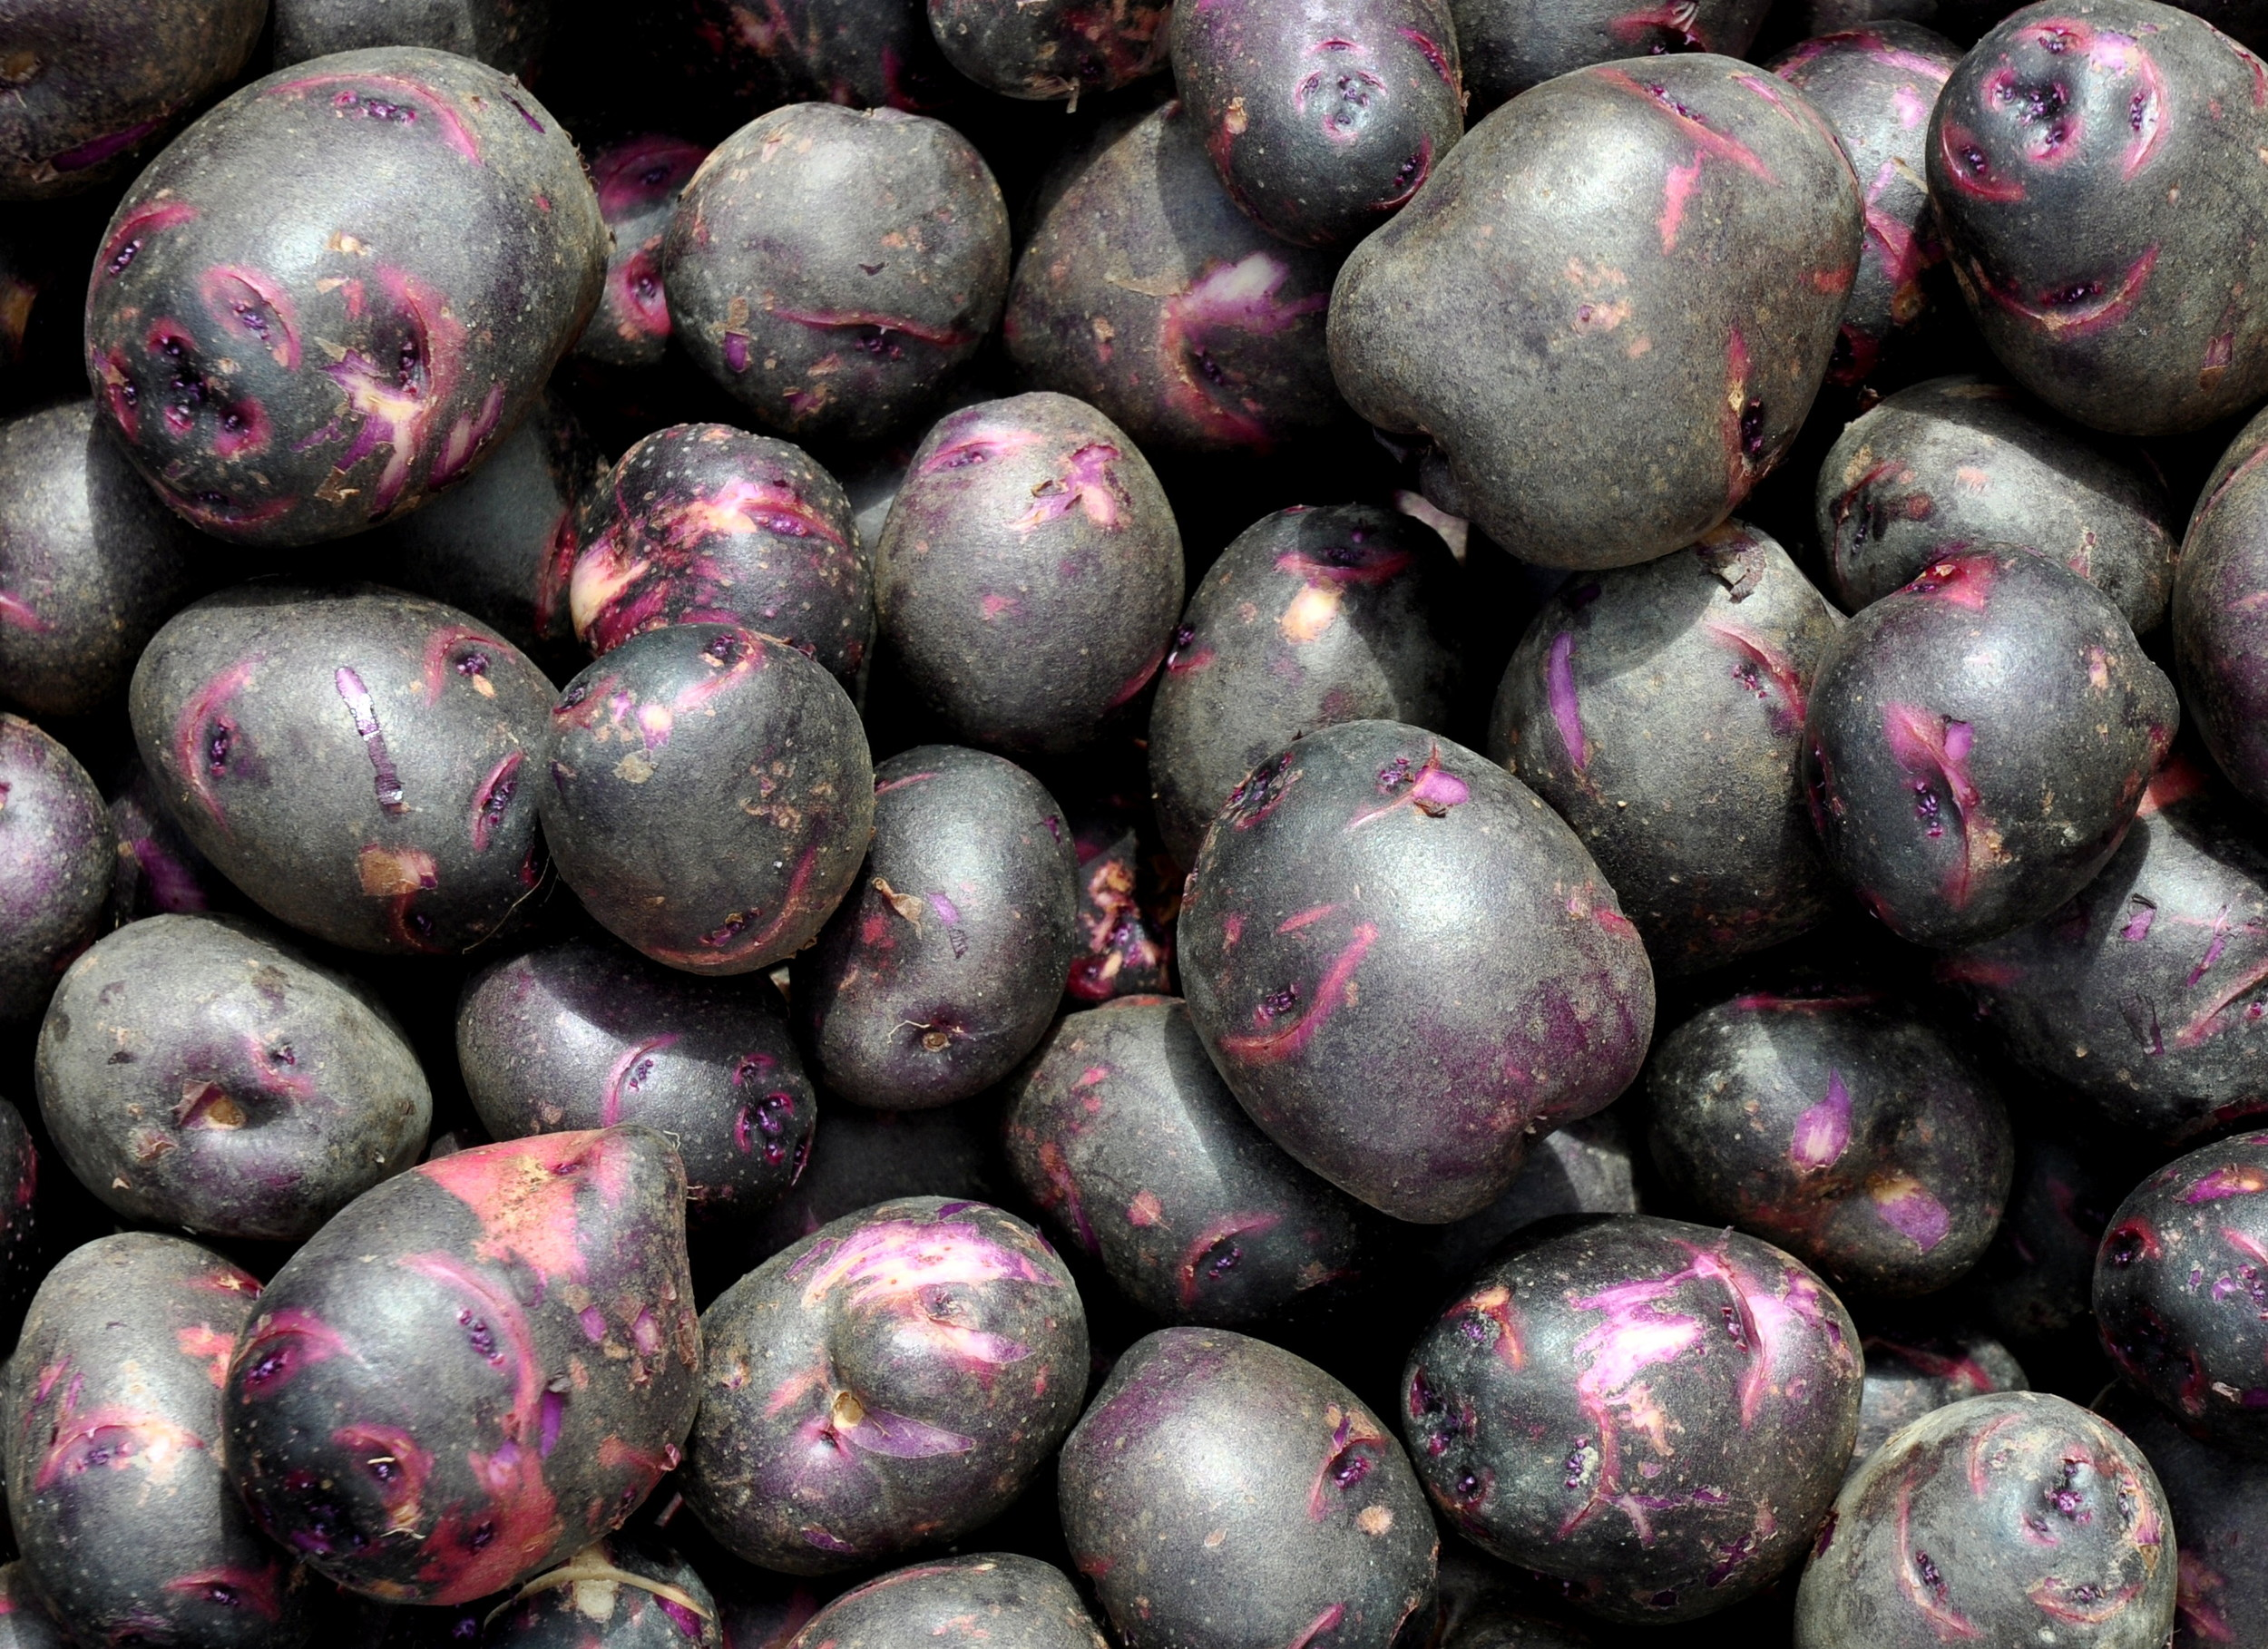 Viking purple potatoes from Olsen Farms at Ballard Farmers Market. Copyright 2014 by Zachary D. Lyons.